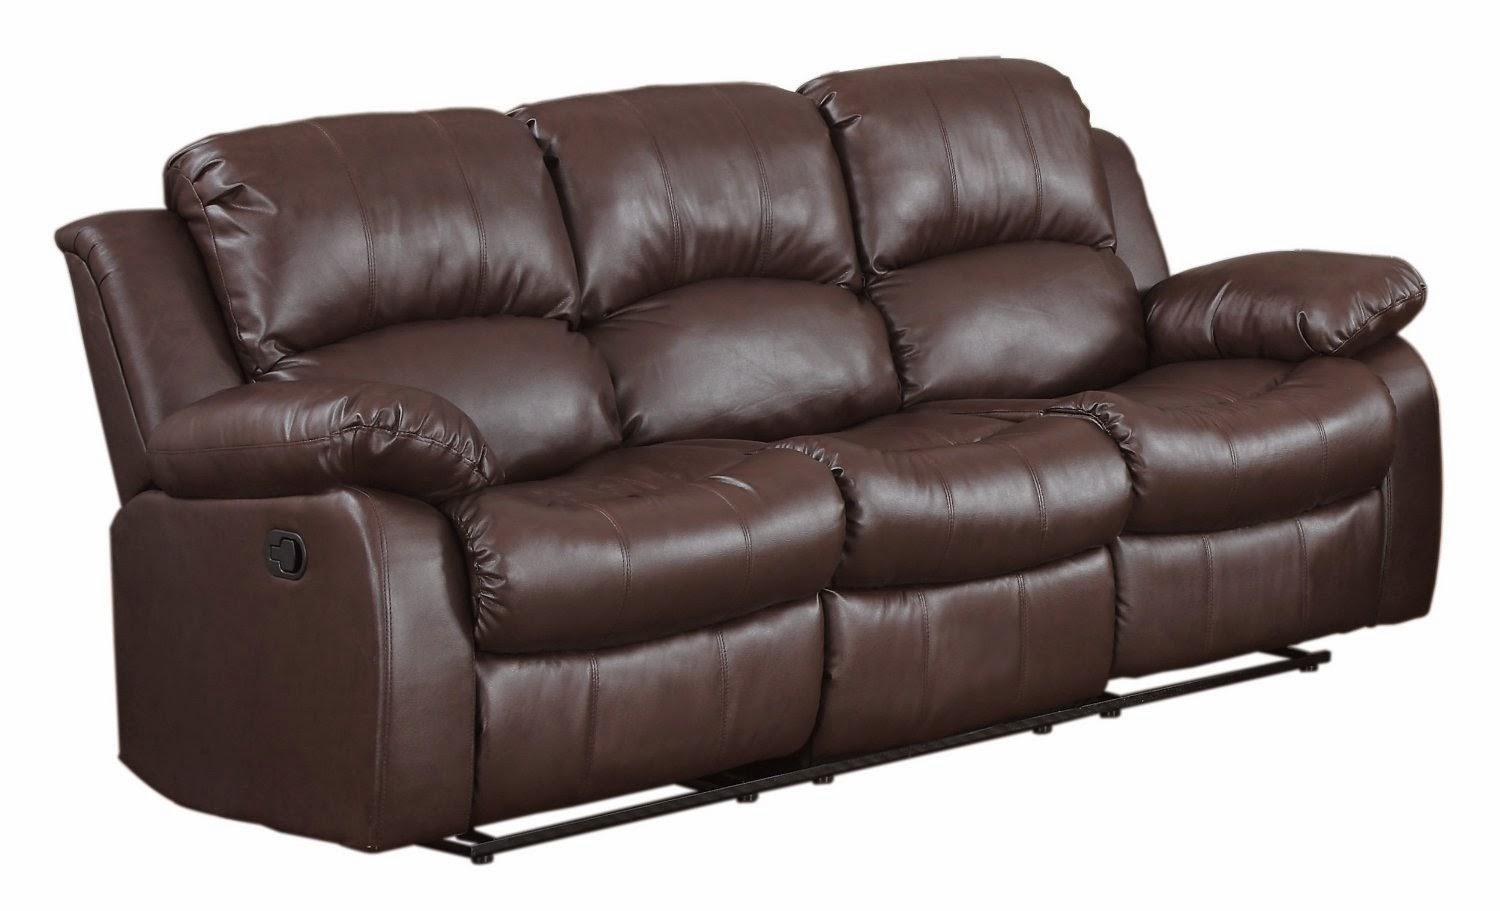 Reclining Leather Sofas Uk Functionalities Net ~ Recliner Leather Sofa Deals